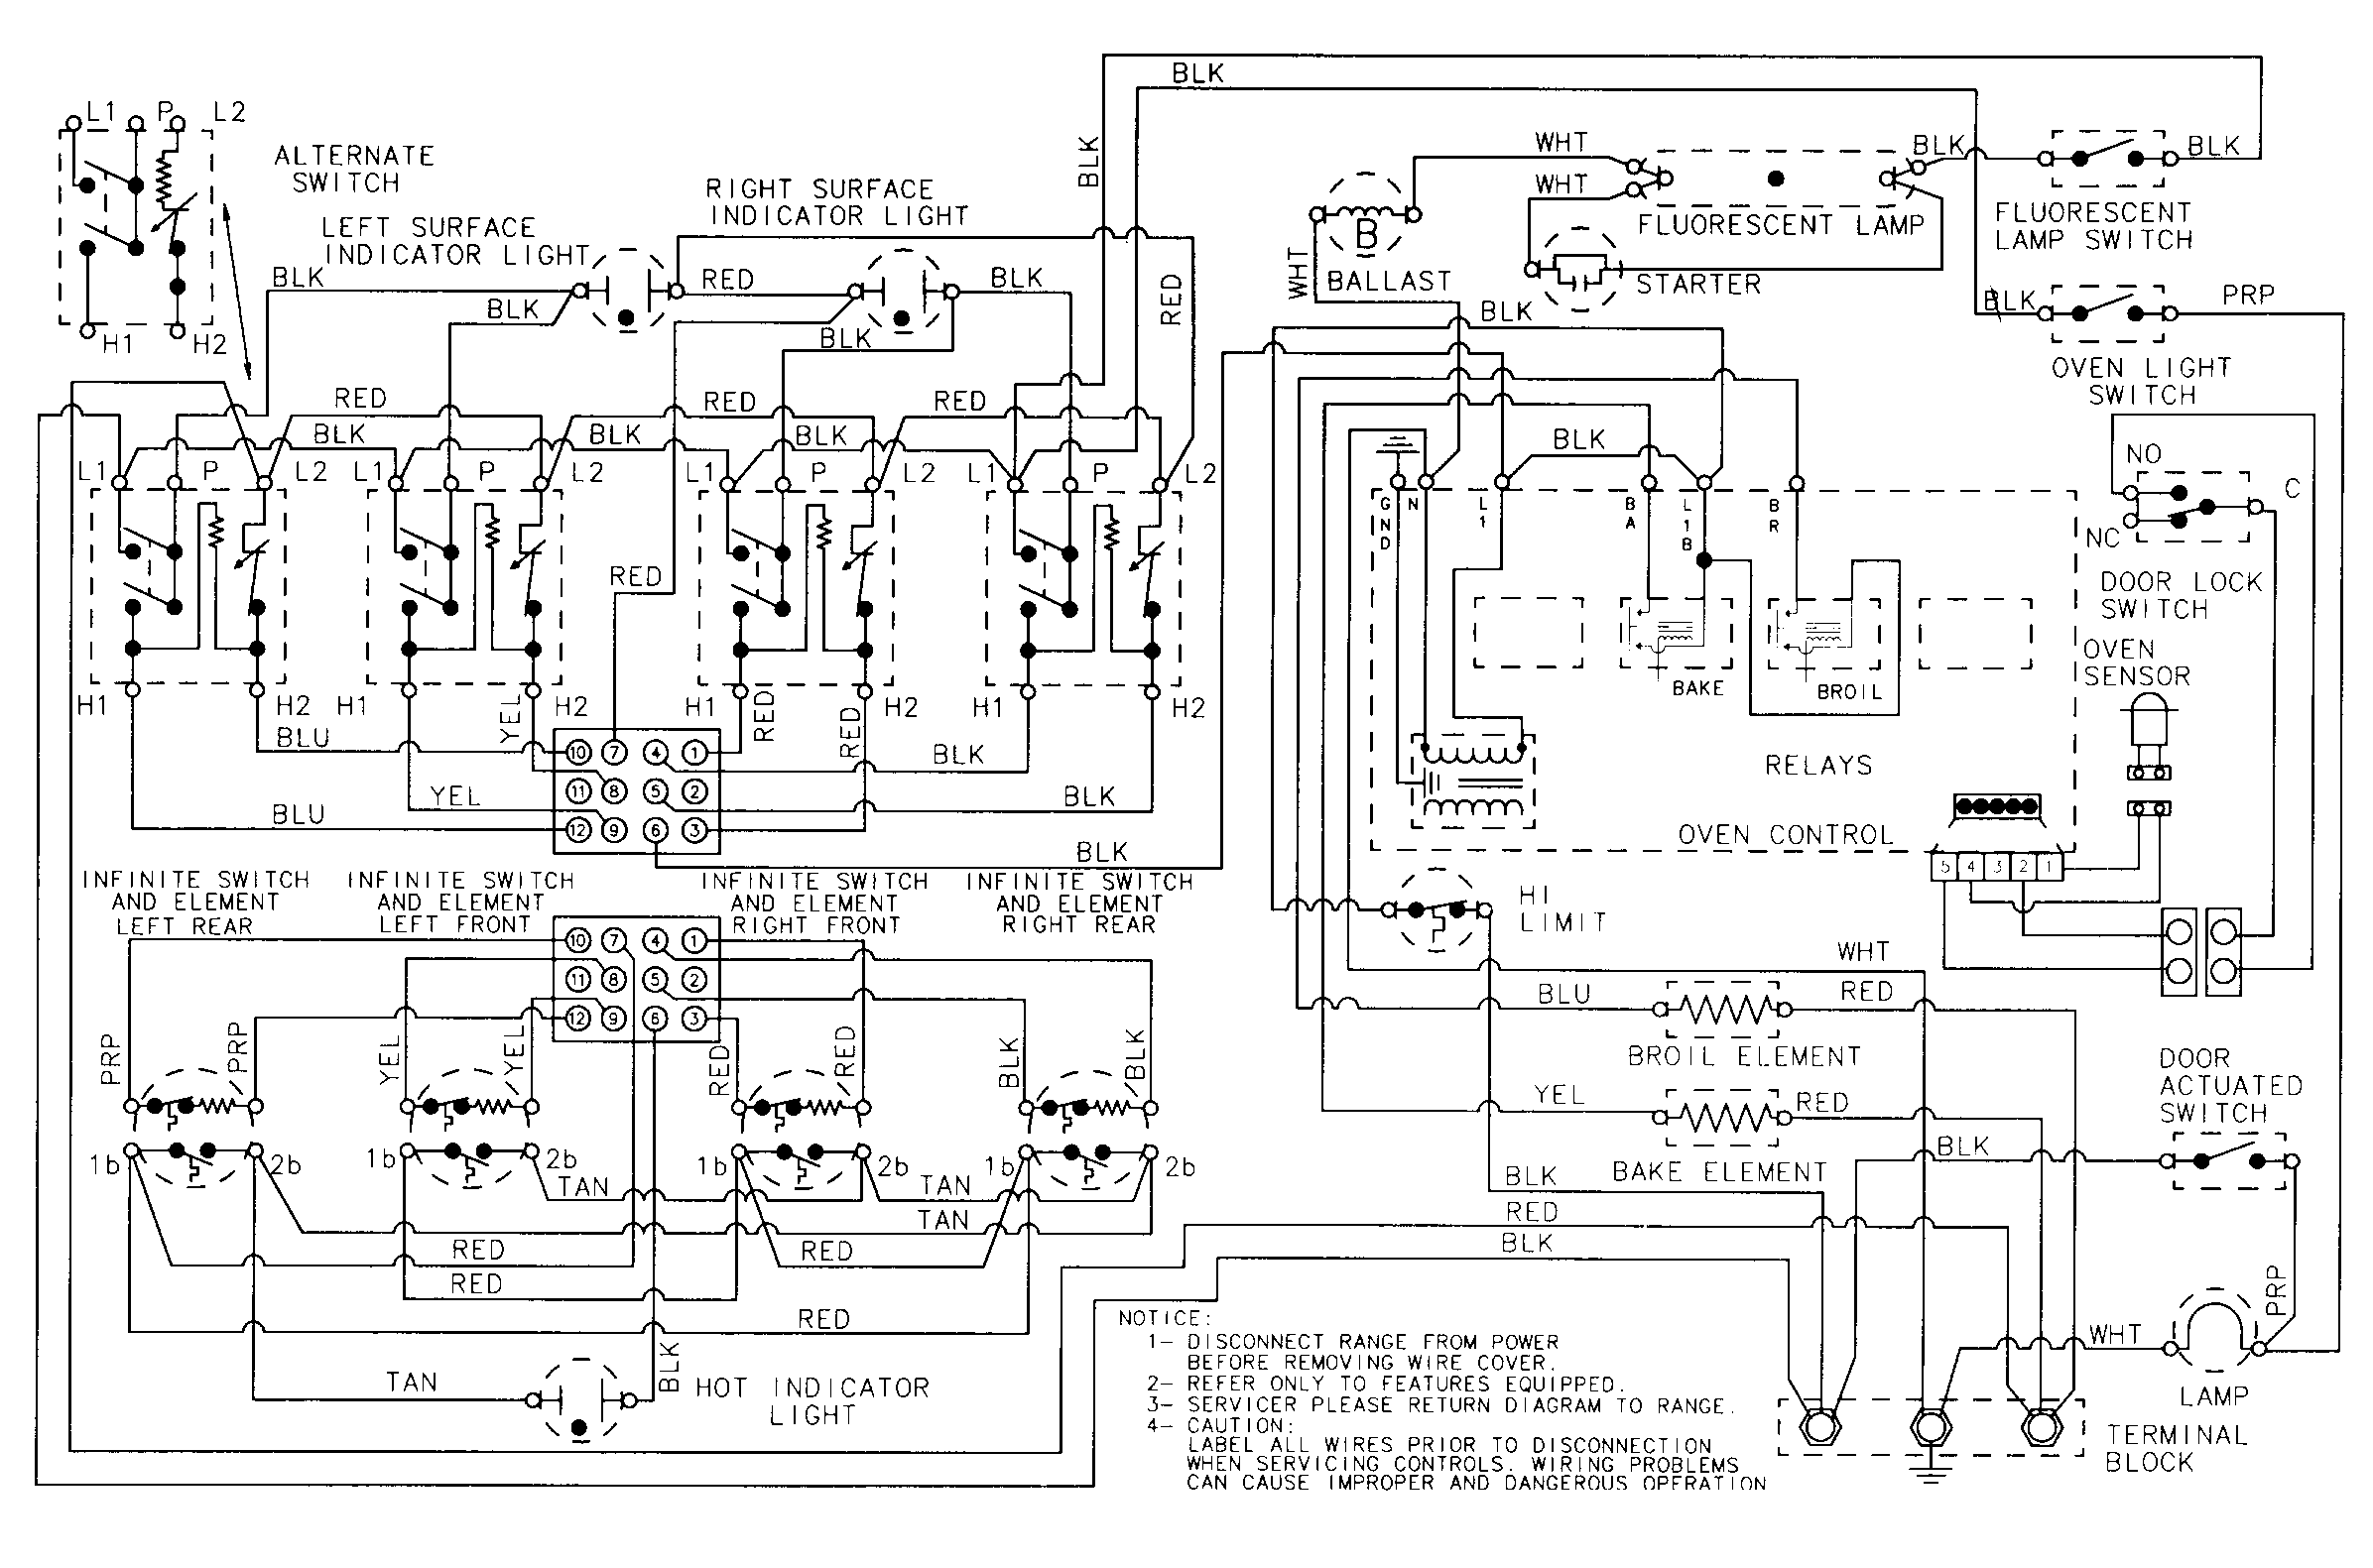 Dryer Wiring Diagram Frigidaire Download Diagrams Timer Whirlpool Dishwasher Control Board Schematic Gallery